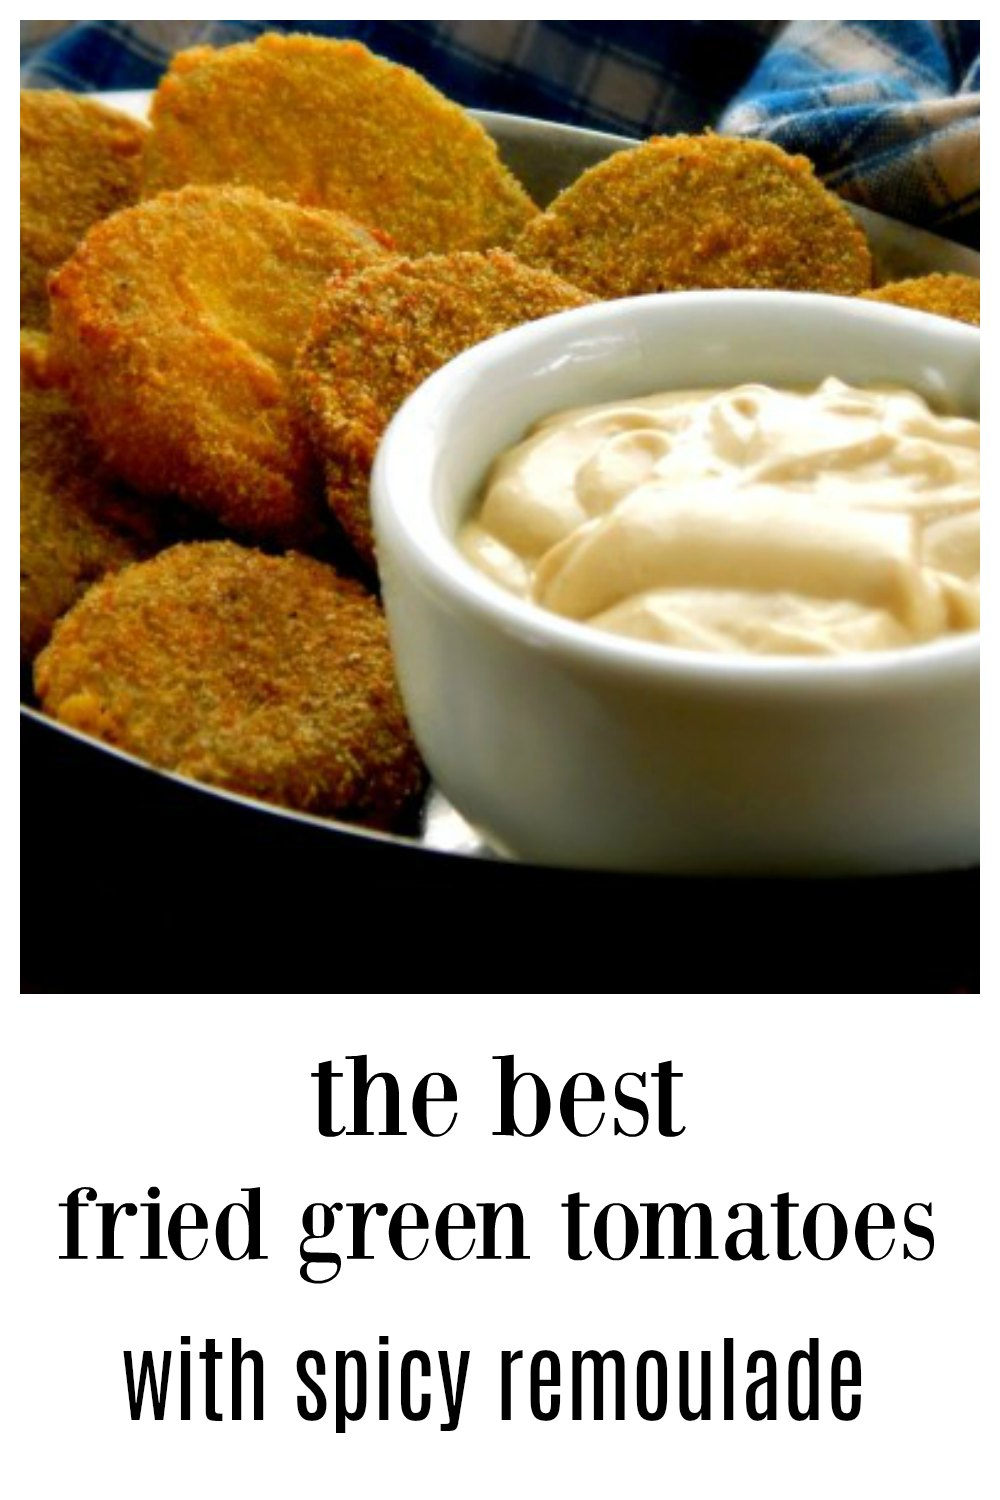 Tangy, juicy Fried Green Tomatoes with Spicy Remoulade & crispy crust! The South's Best kept secret! Here are the tips & tricks you need to make the BEST! #FriedGreenTomatoes